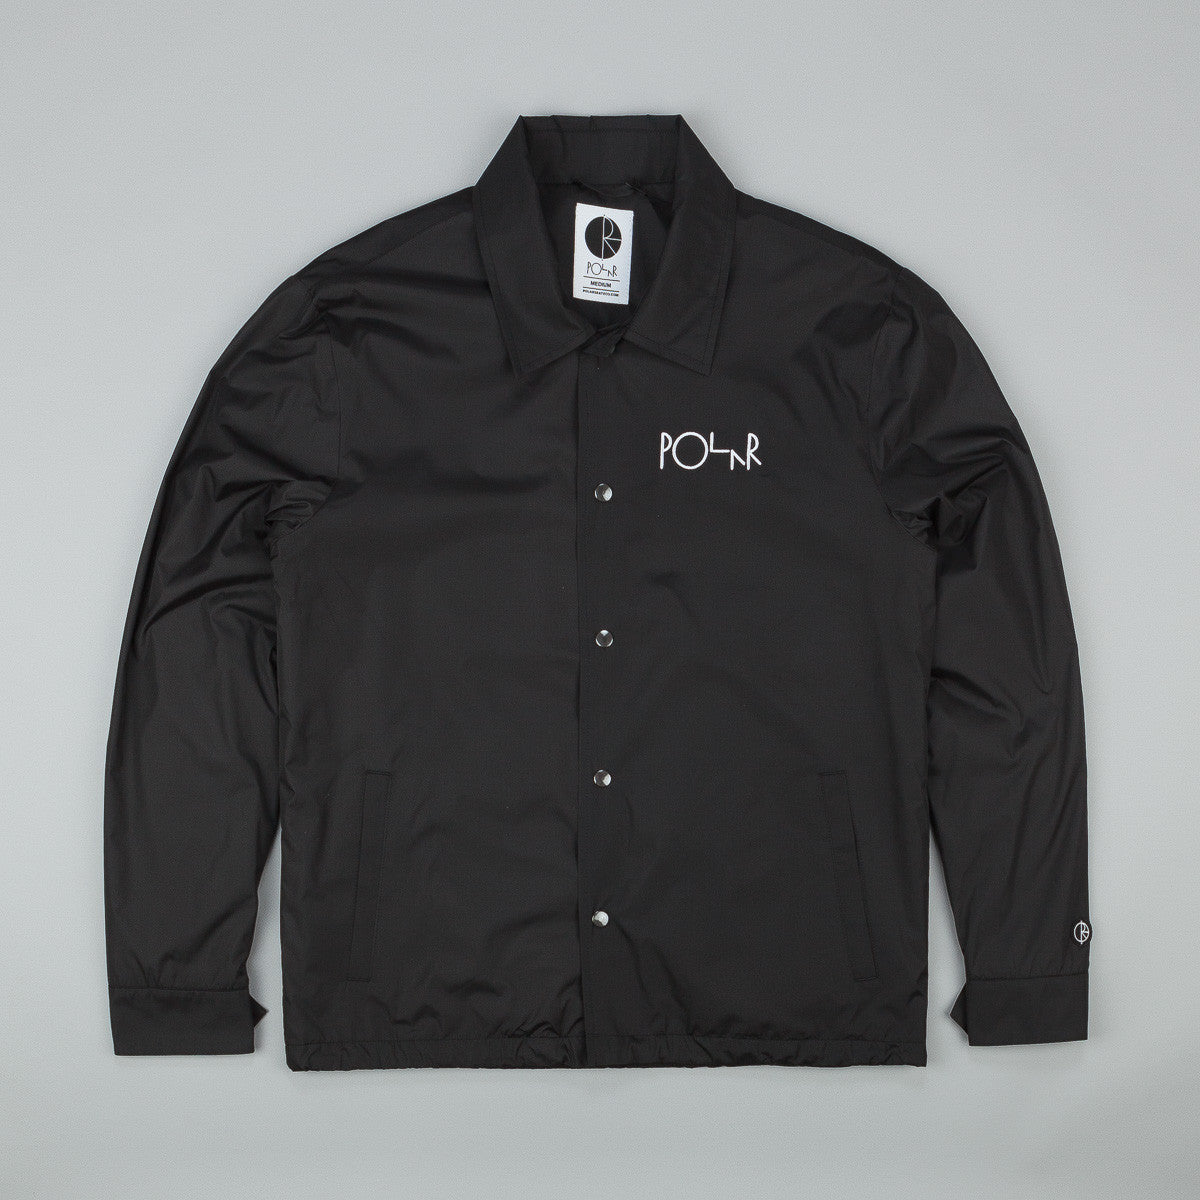 Polar Stroke Logo Patch Coach Jacket